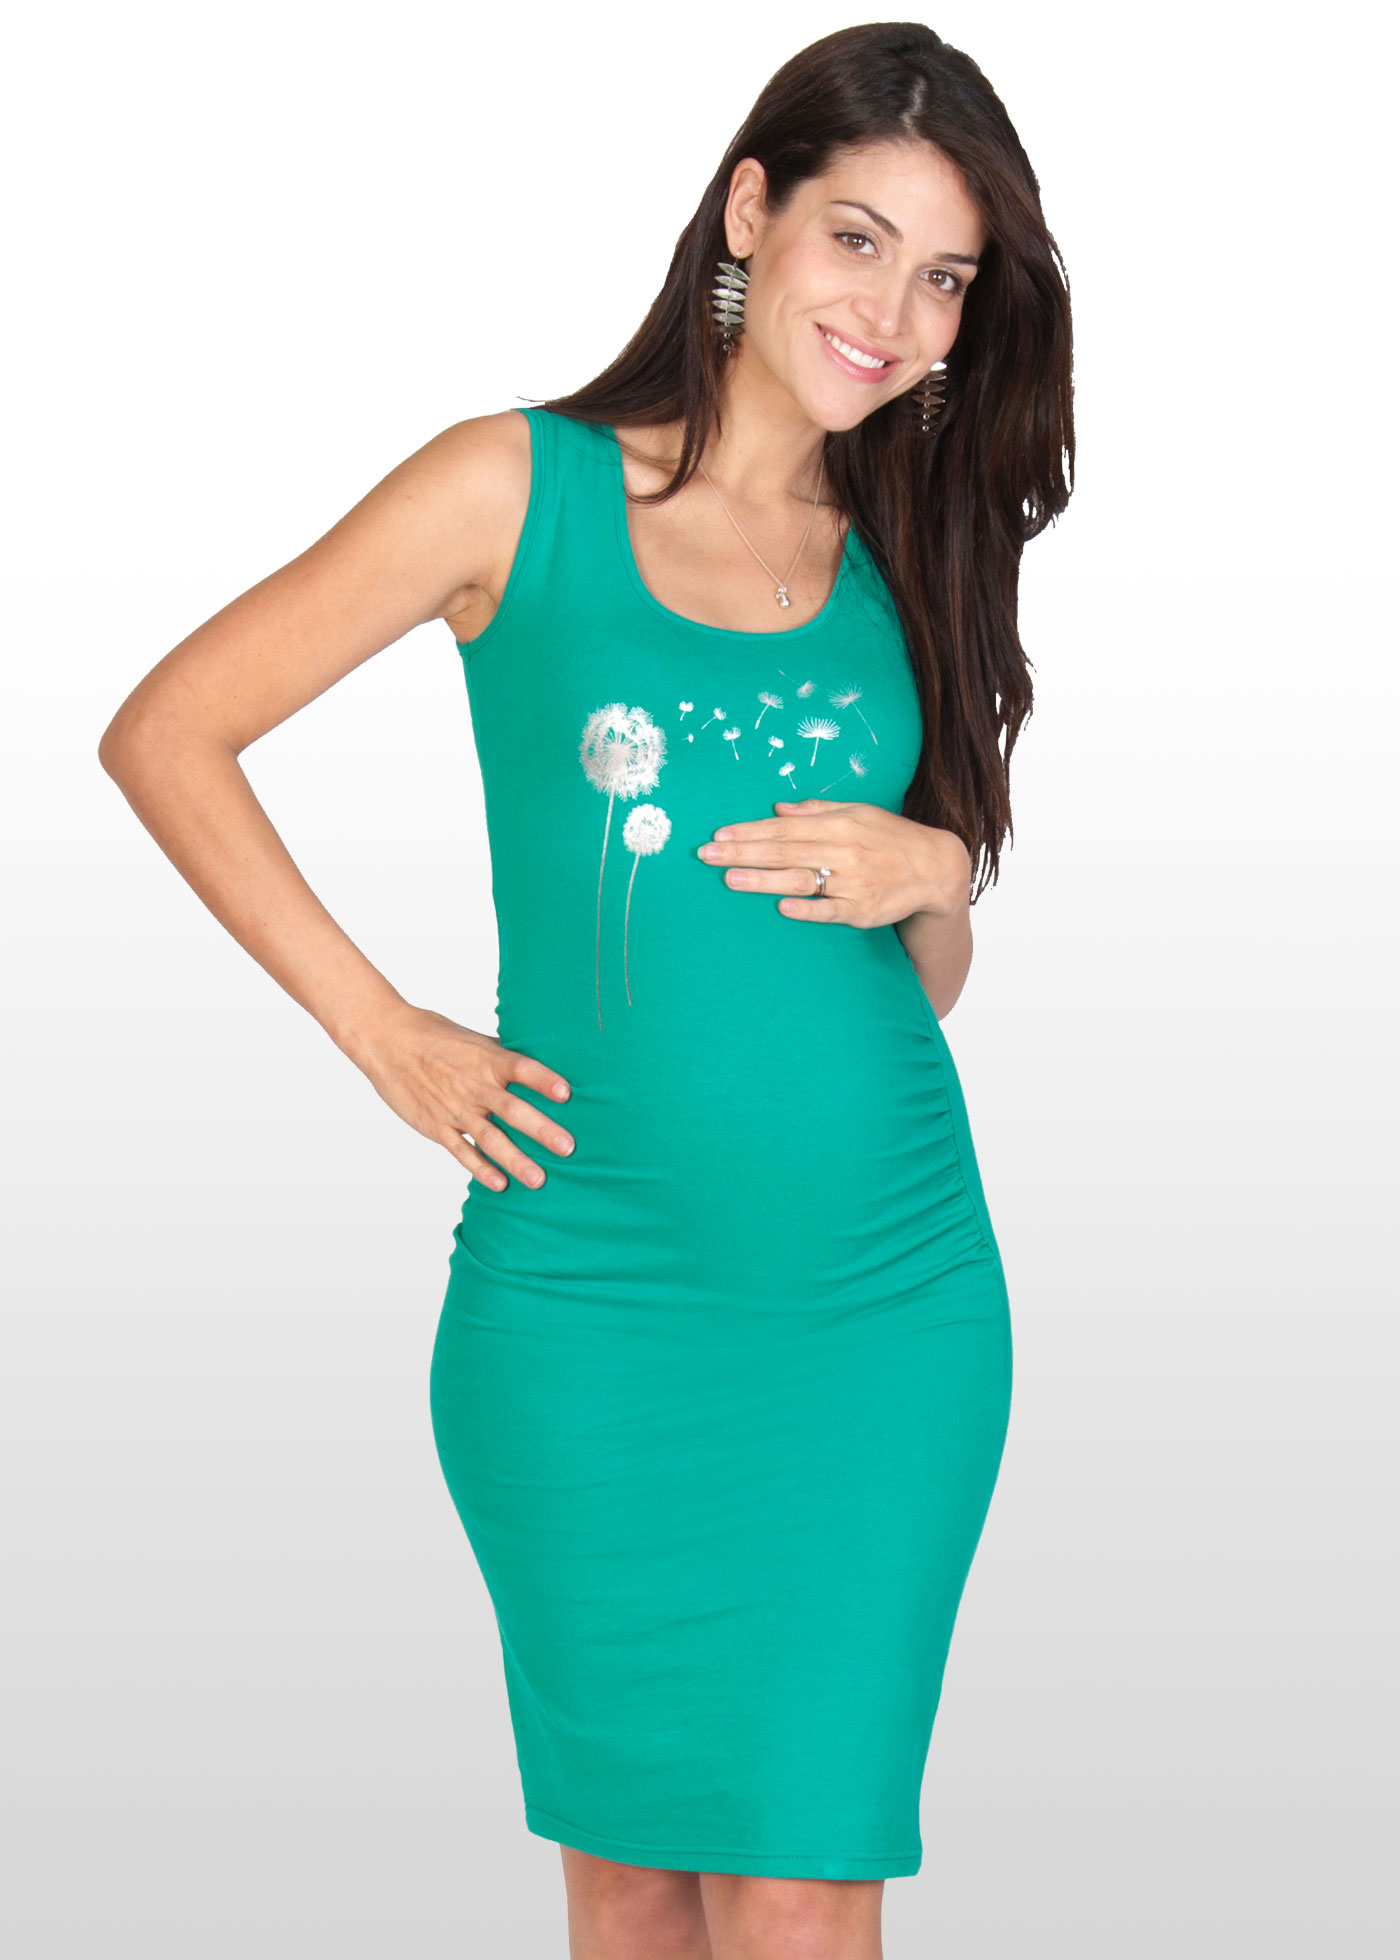 Australia\'s Spring / Summer Maternity Trends 2014-2015 | The ...